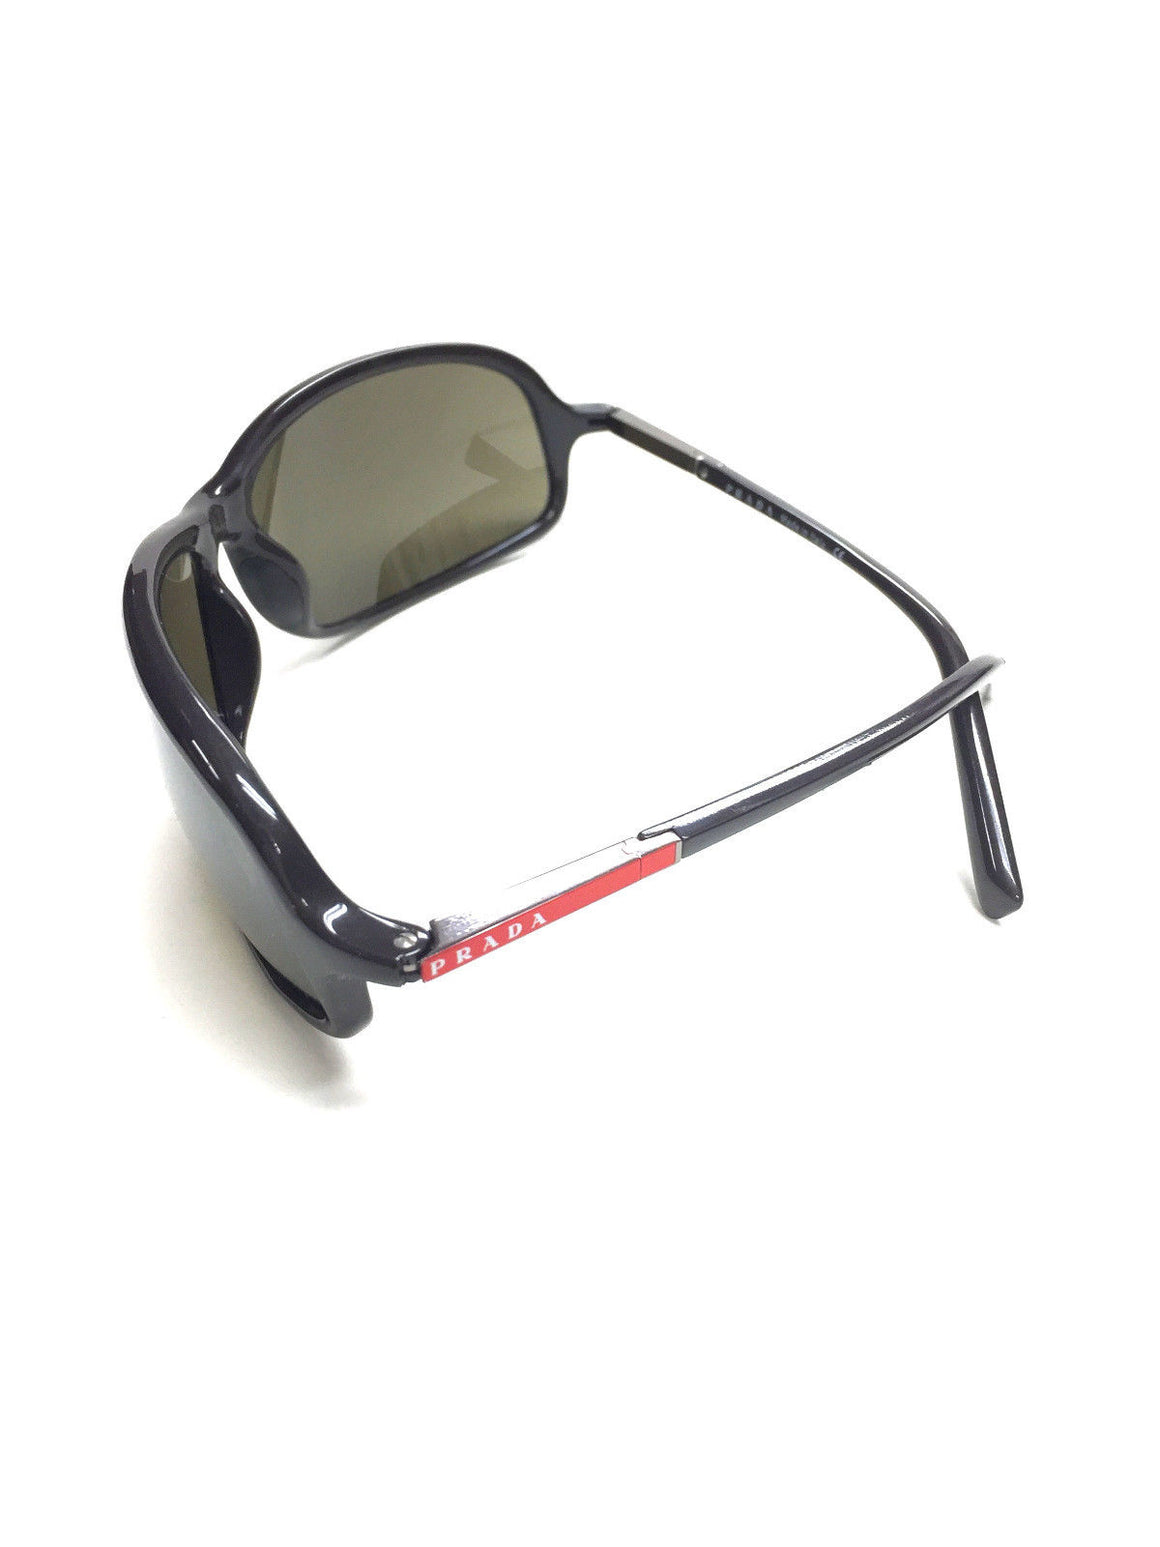 bisbiz.com PRADA Gunmetal Acrylic-Frame Wrap Sunglasses w/Reflective Lenses Style: SPS02D/0AT501 - Bis Luxury Resale